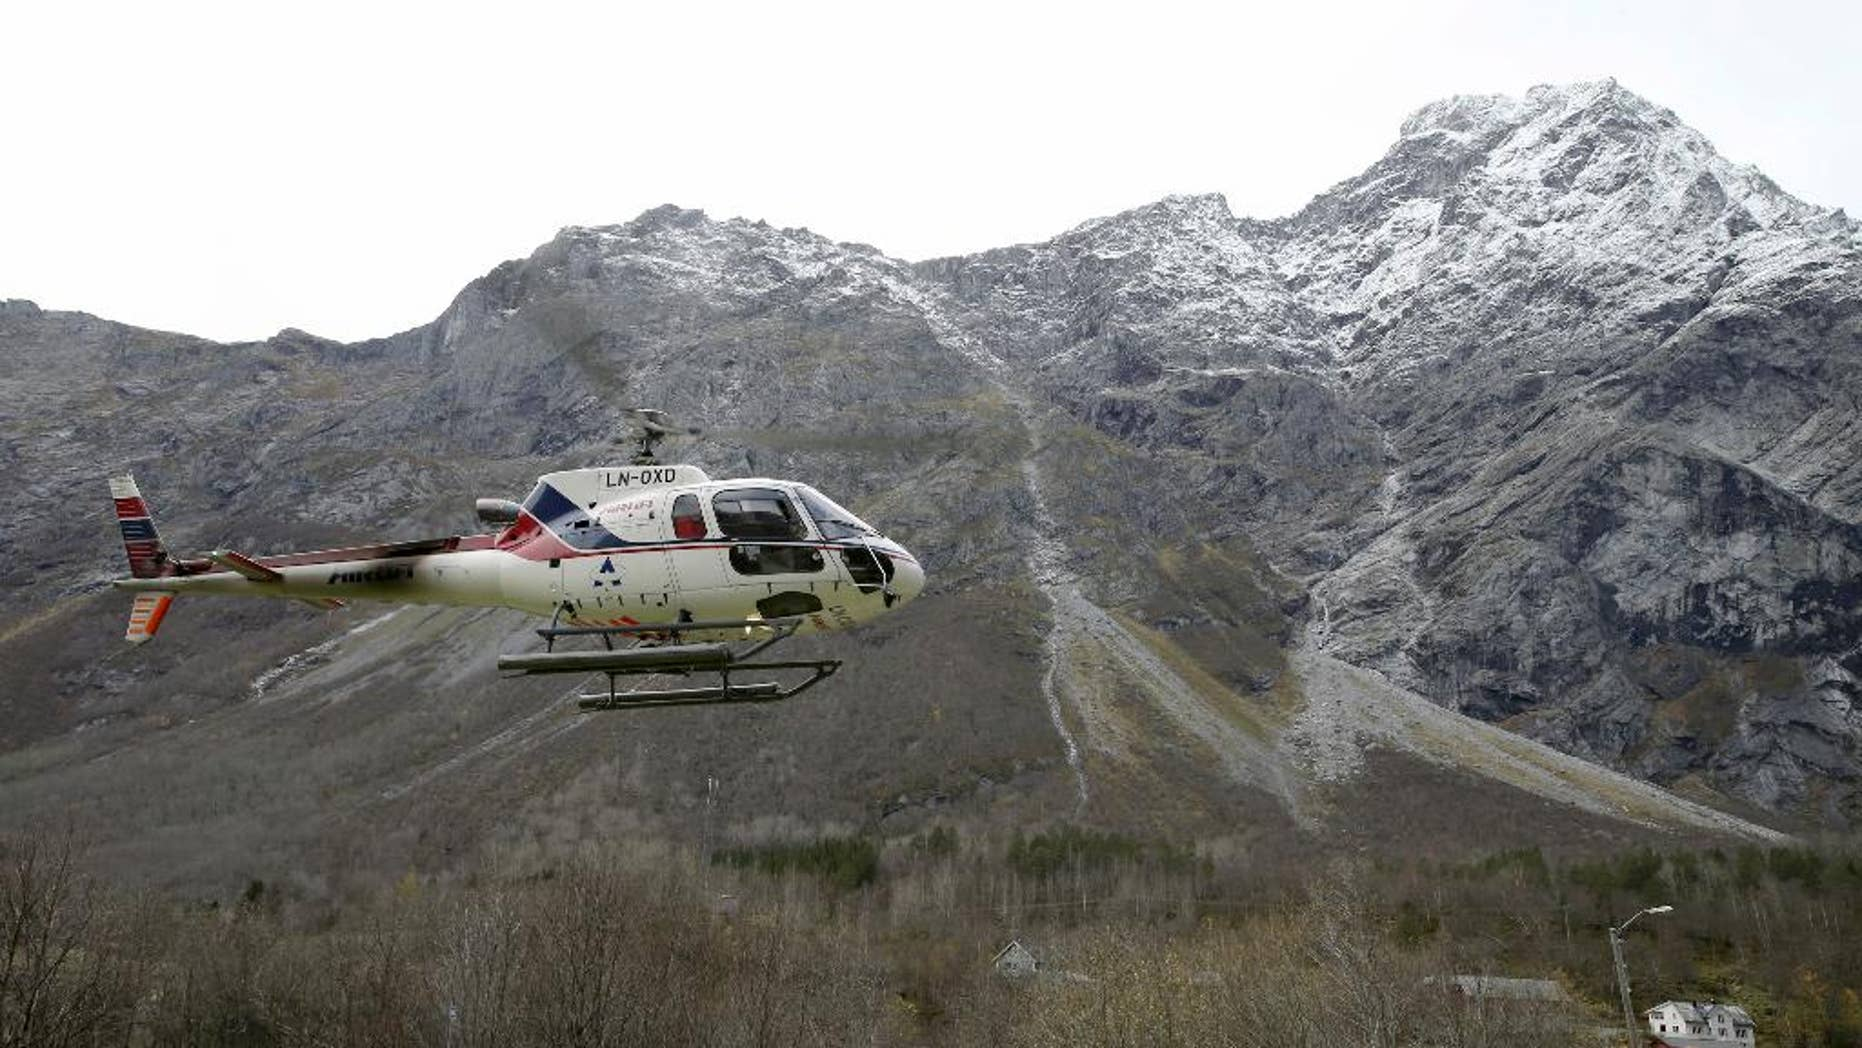 A helicopter takes off at the foot of the mountain called Mannen near Andalsnes, Norway, on Monday Oct. 27, 2014.  After being on alert for weeks experts predict a huge rockslide from the mountain within days, following heavy rain in the area. (AP Photo / Terje Pedersen, NTB scanpix) NORWAY OUT